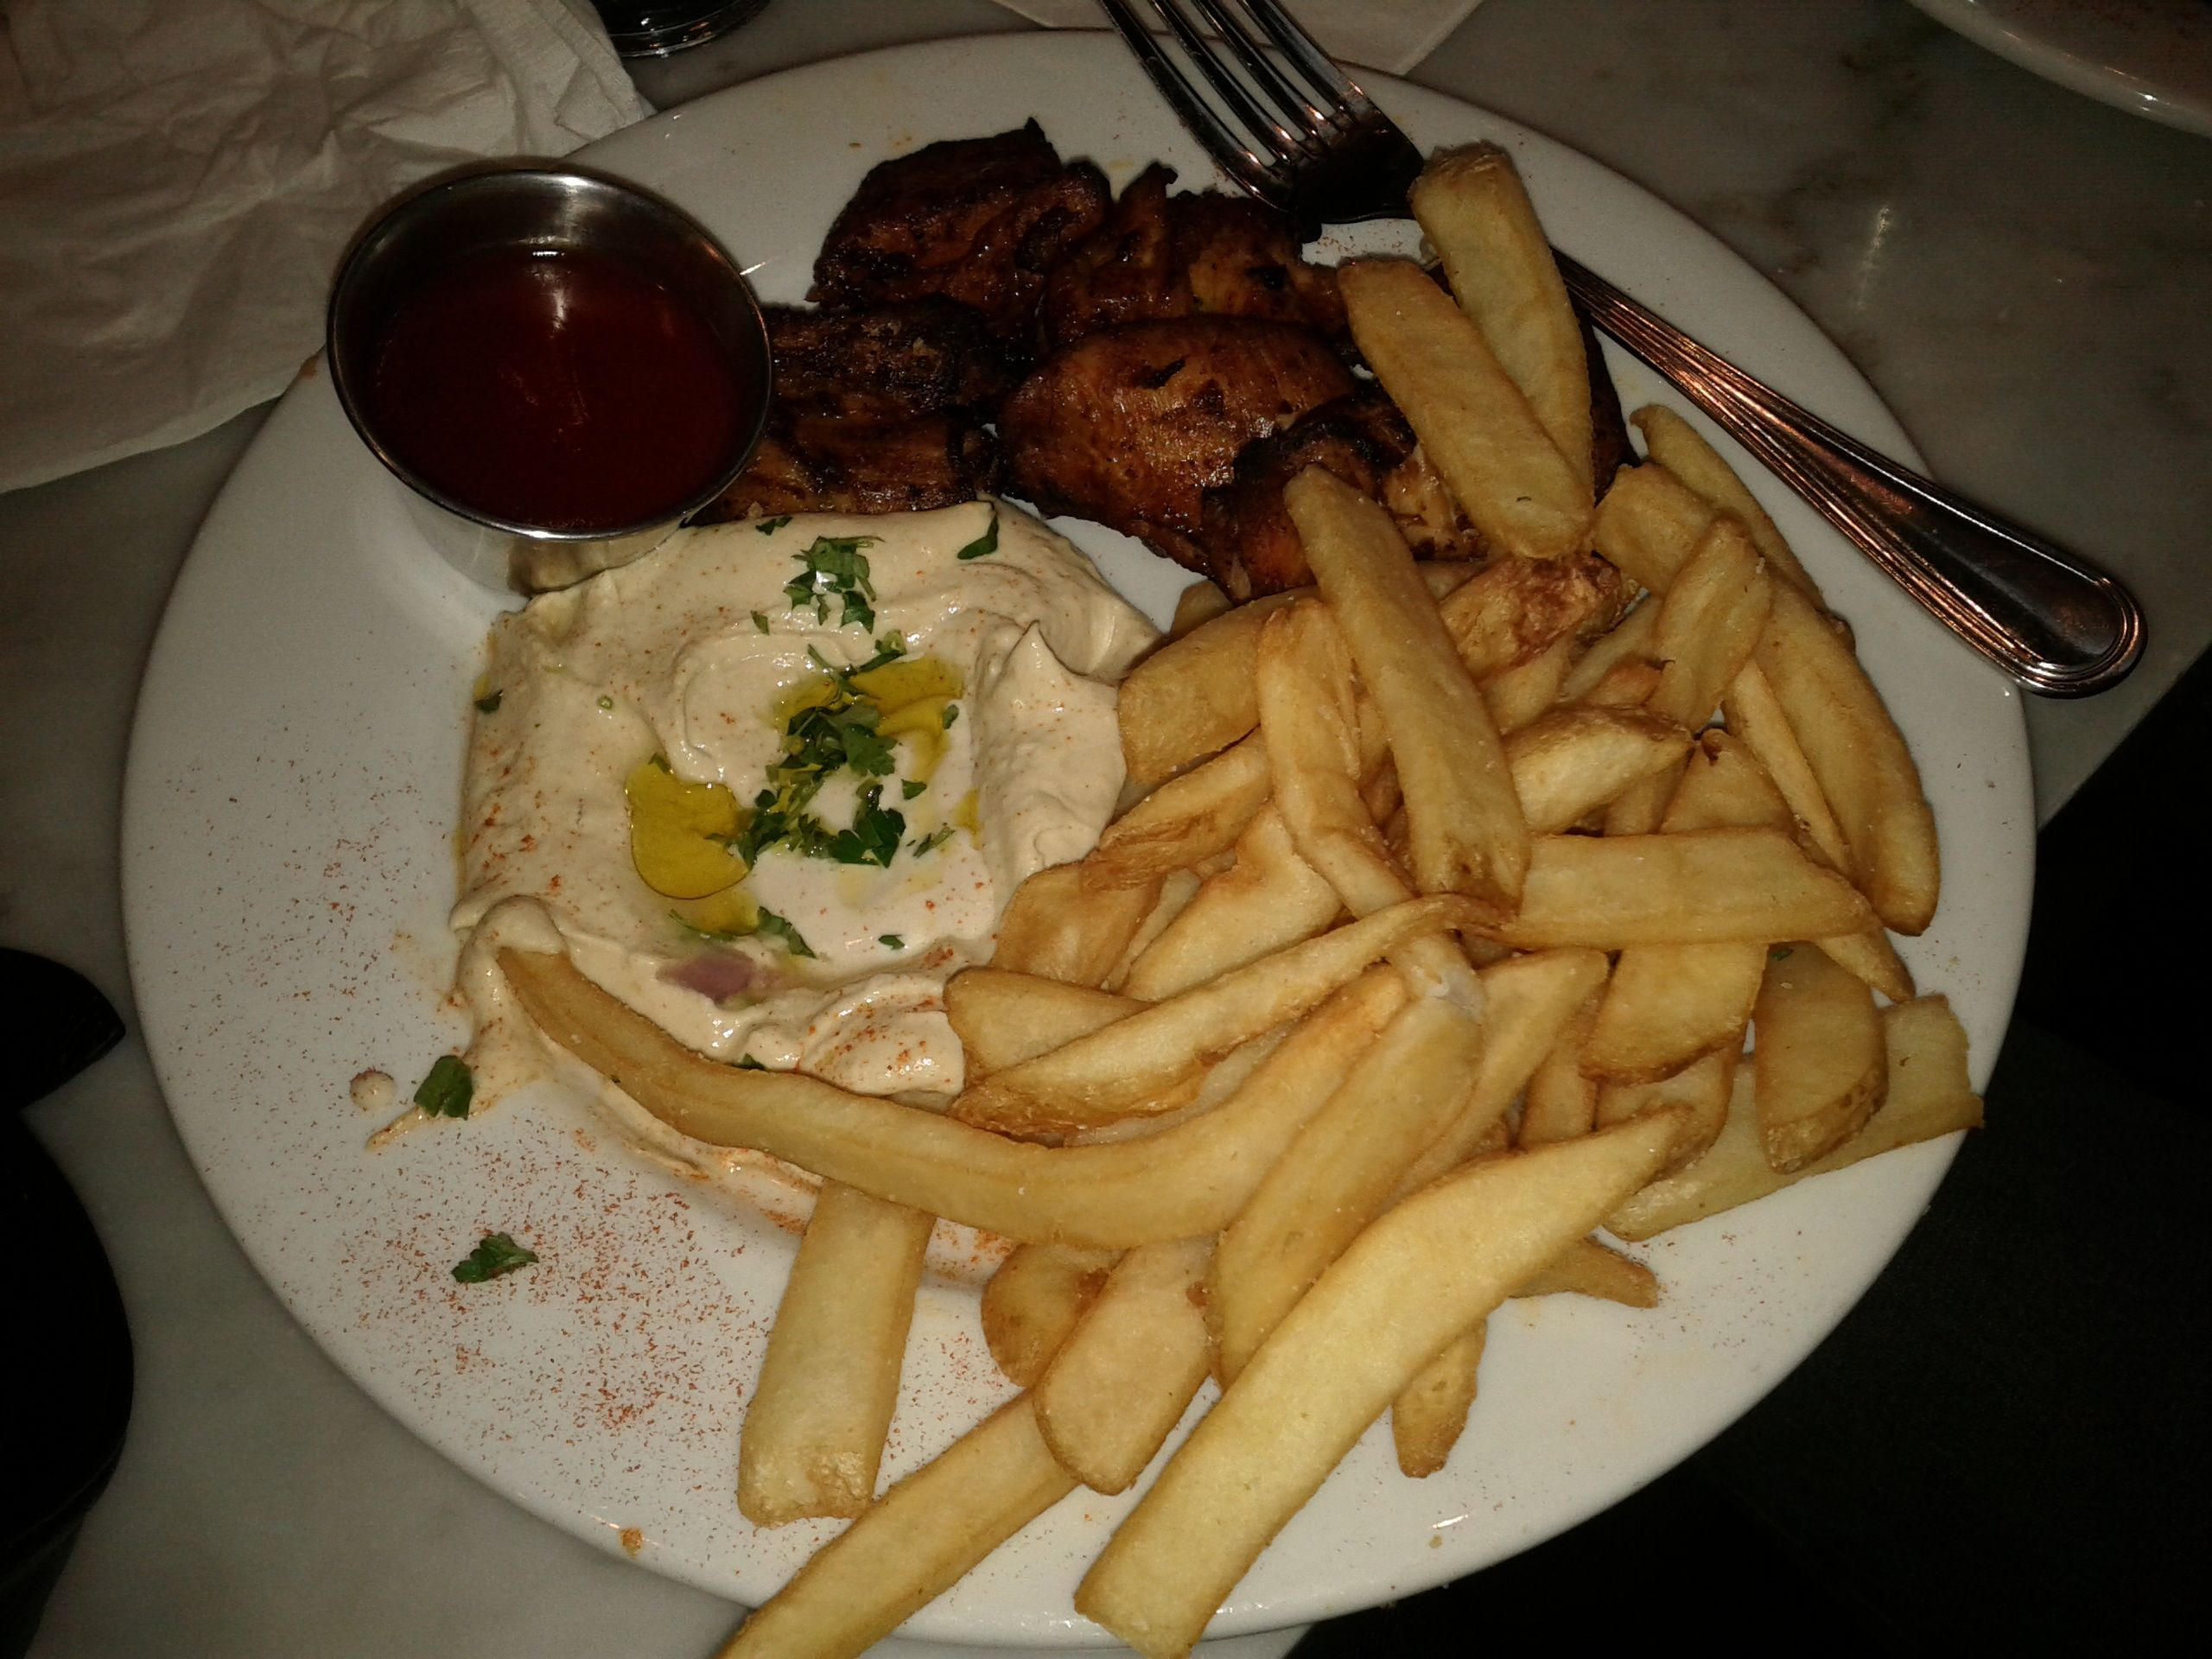 Chicken skewers with hummus and fries at orens hummus